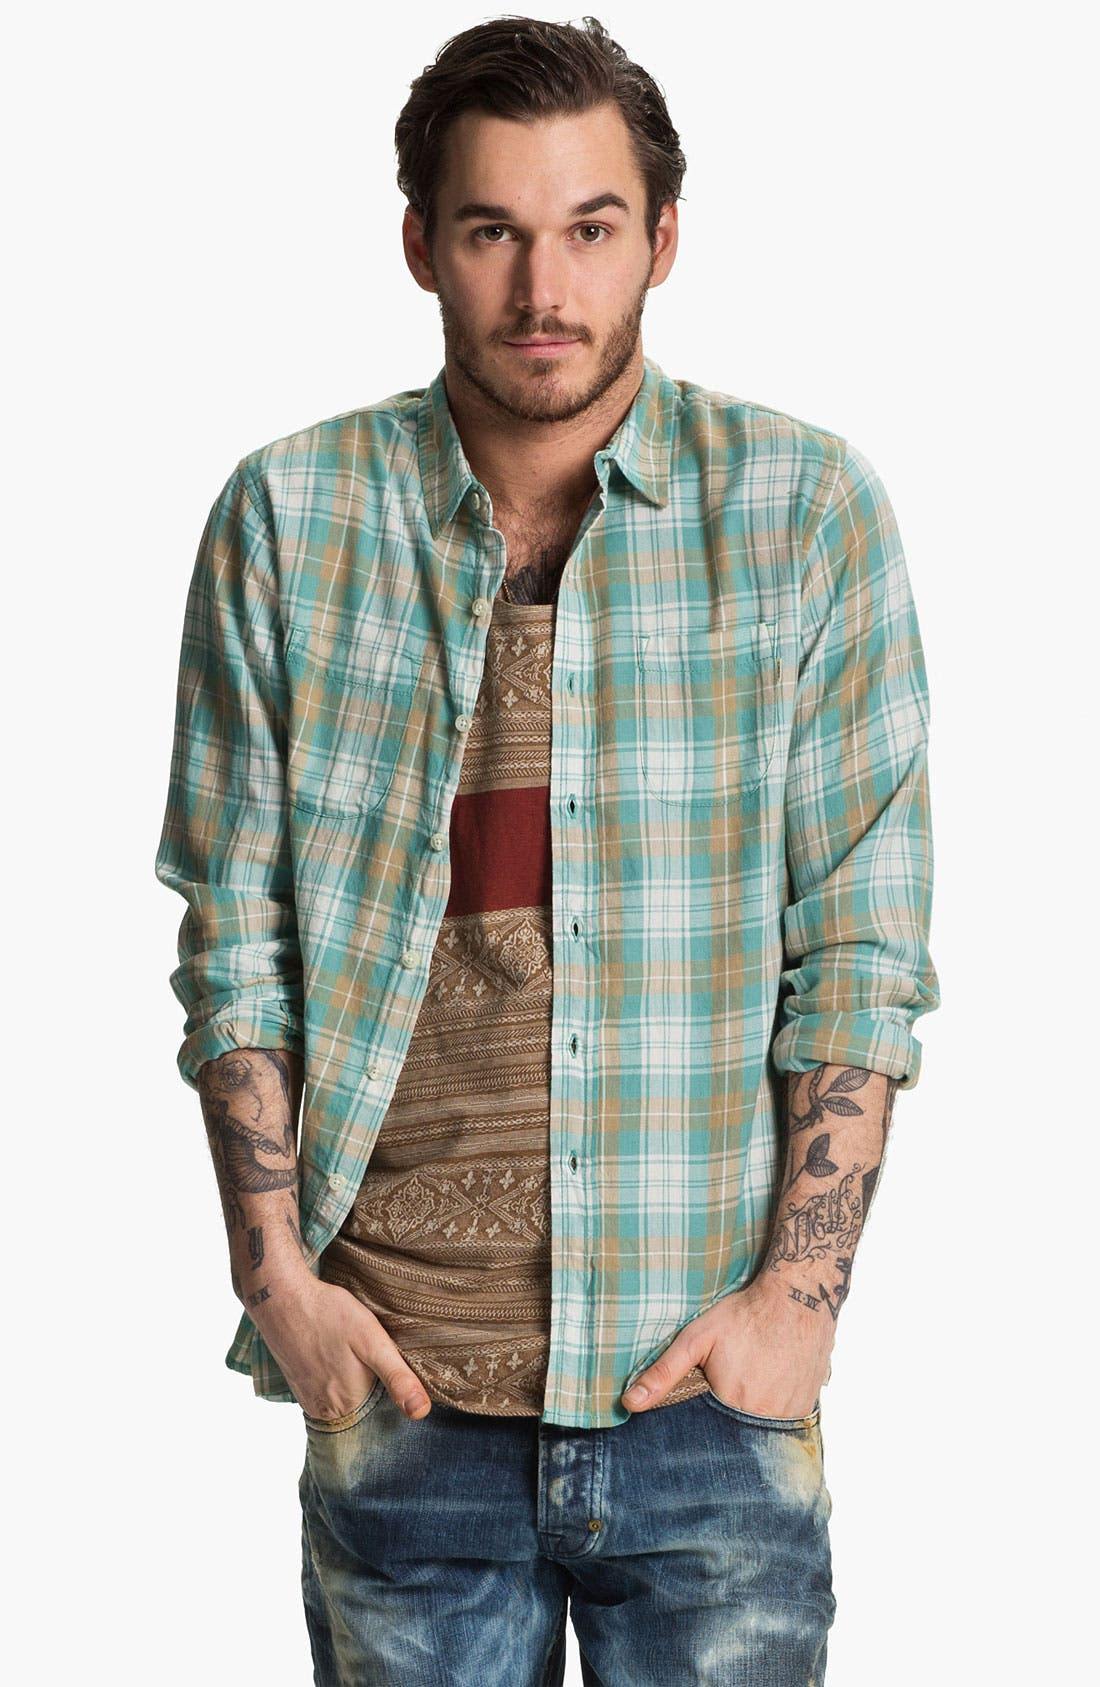 Alternate Image 1 Selected - Obey 'Holten' Plaid Woven Shirt